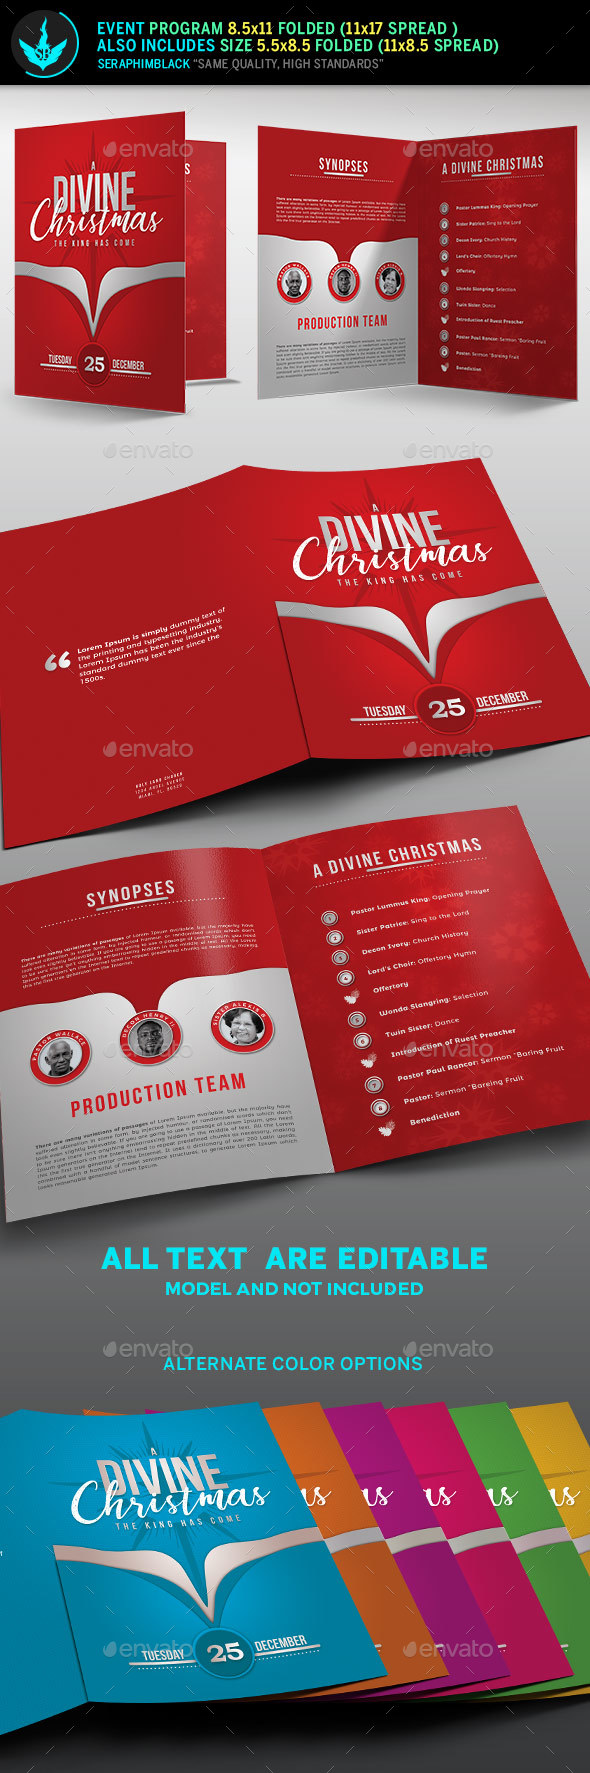 A Divine Christmas Program Template - Informational Brochures